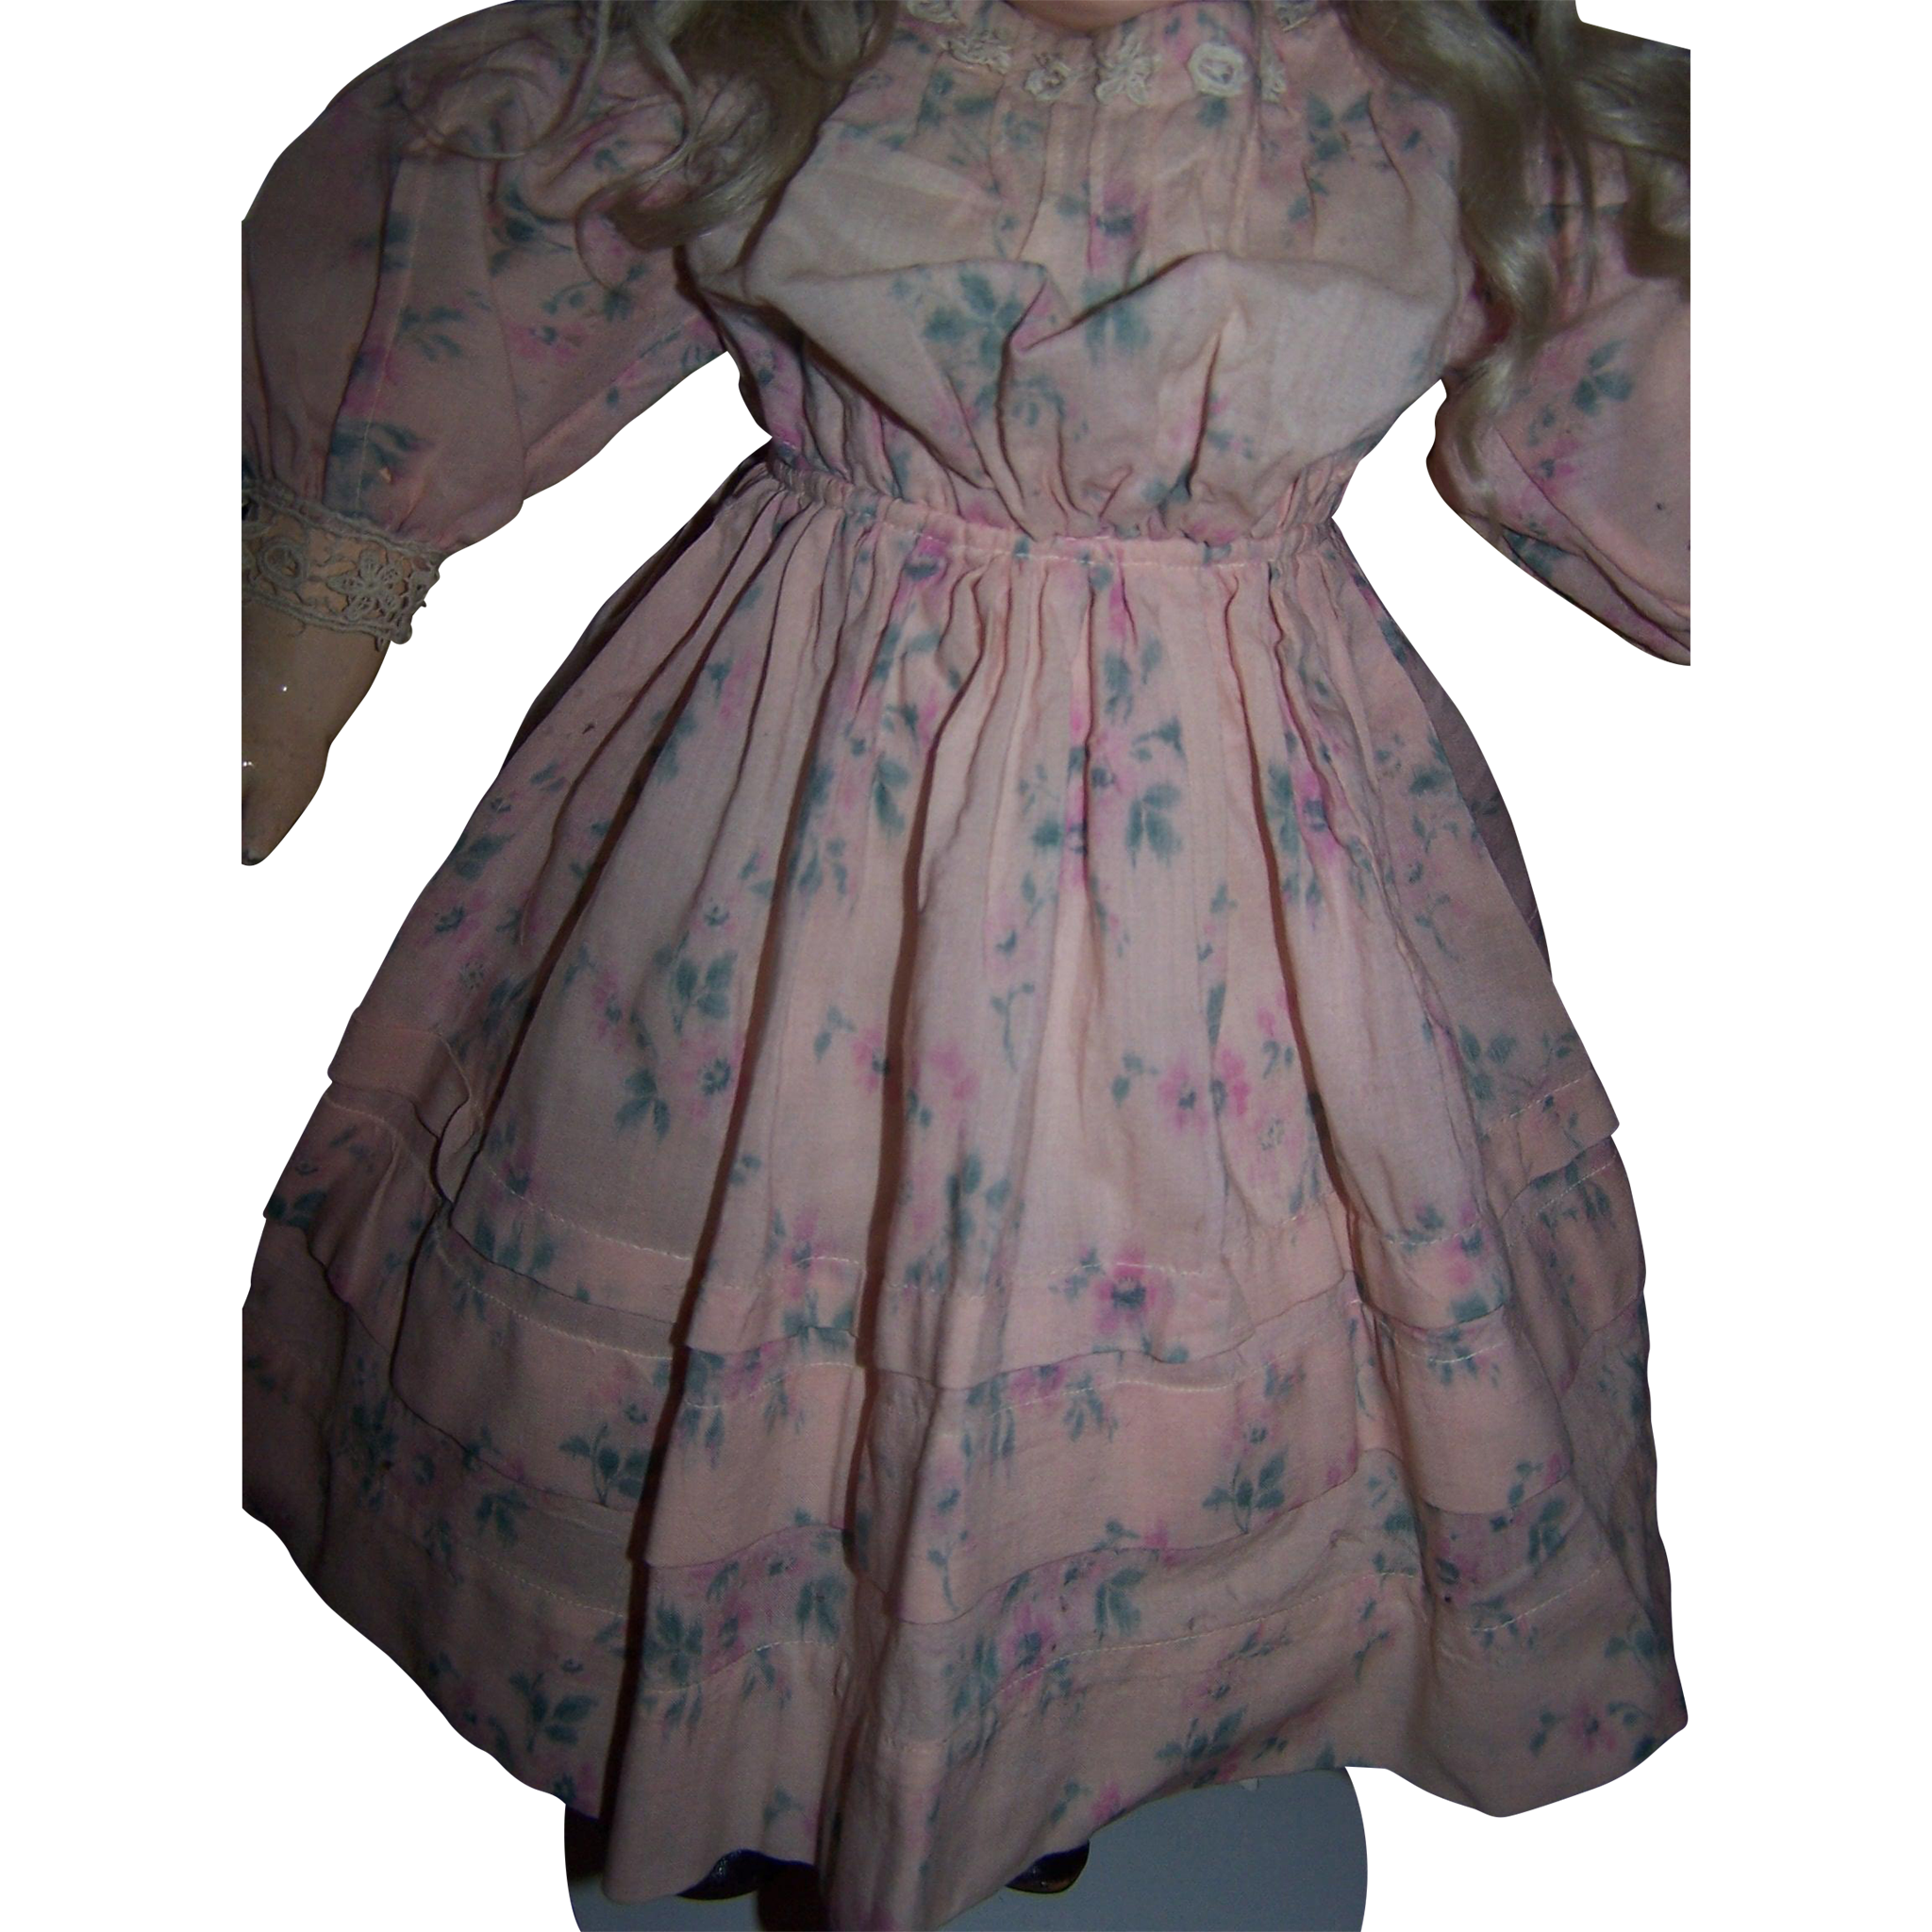 Antique french doll dress in pink wool floral print